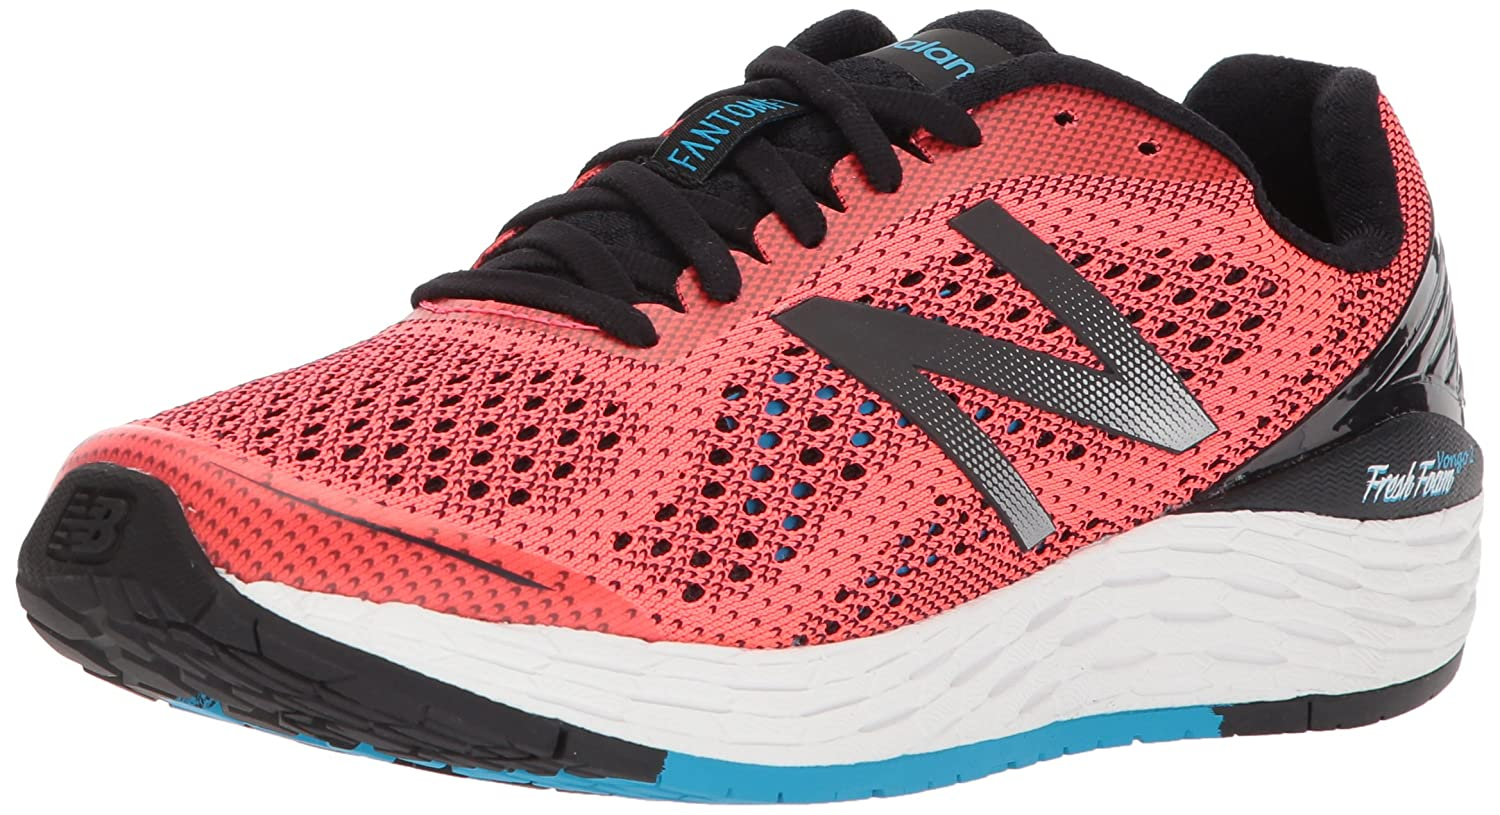 New Balance Women's Vongo V2 Running Shoe B06XSB67R5 11 D US|Vivid Coral/Black